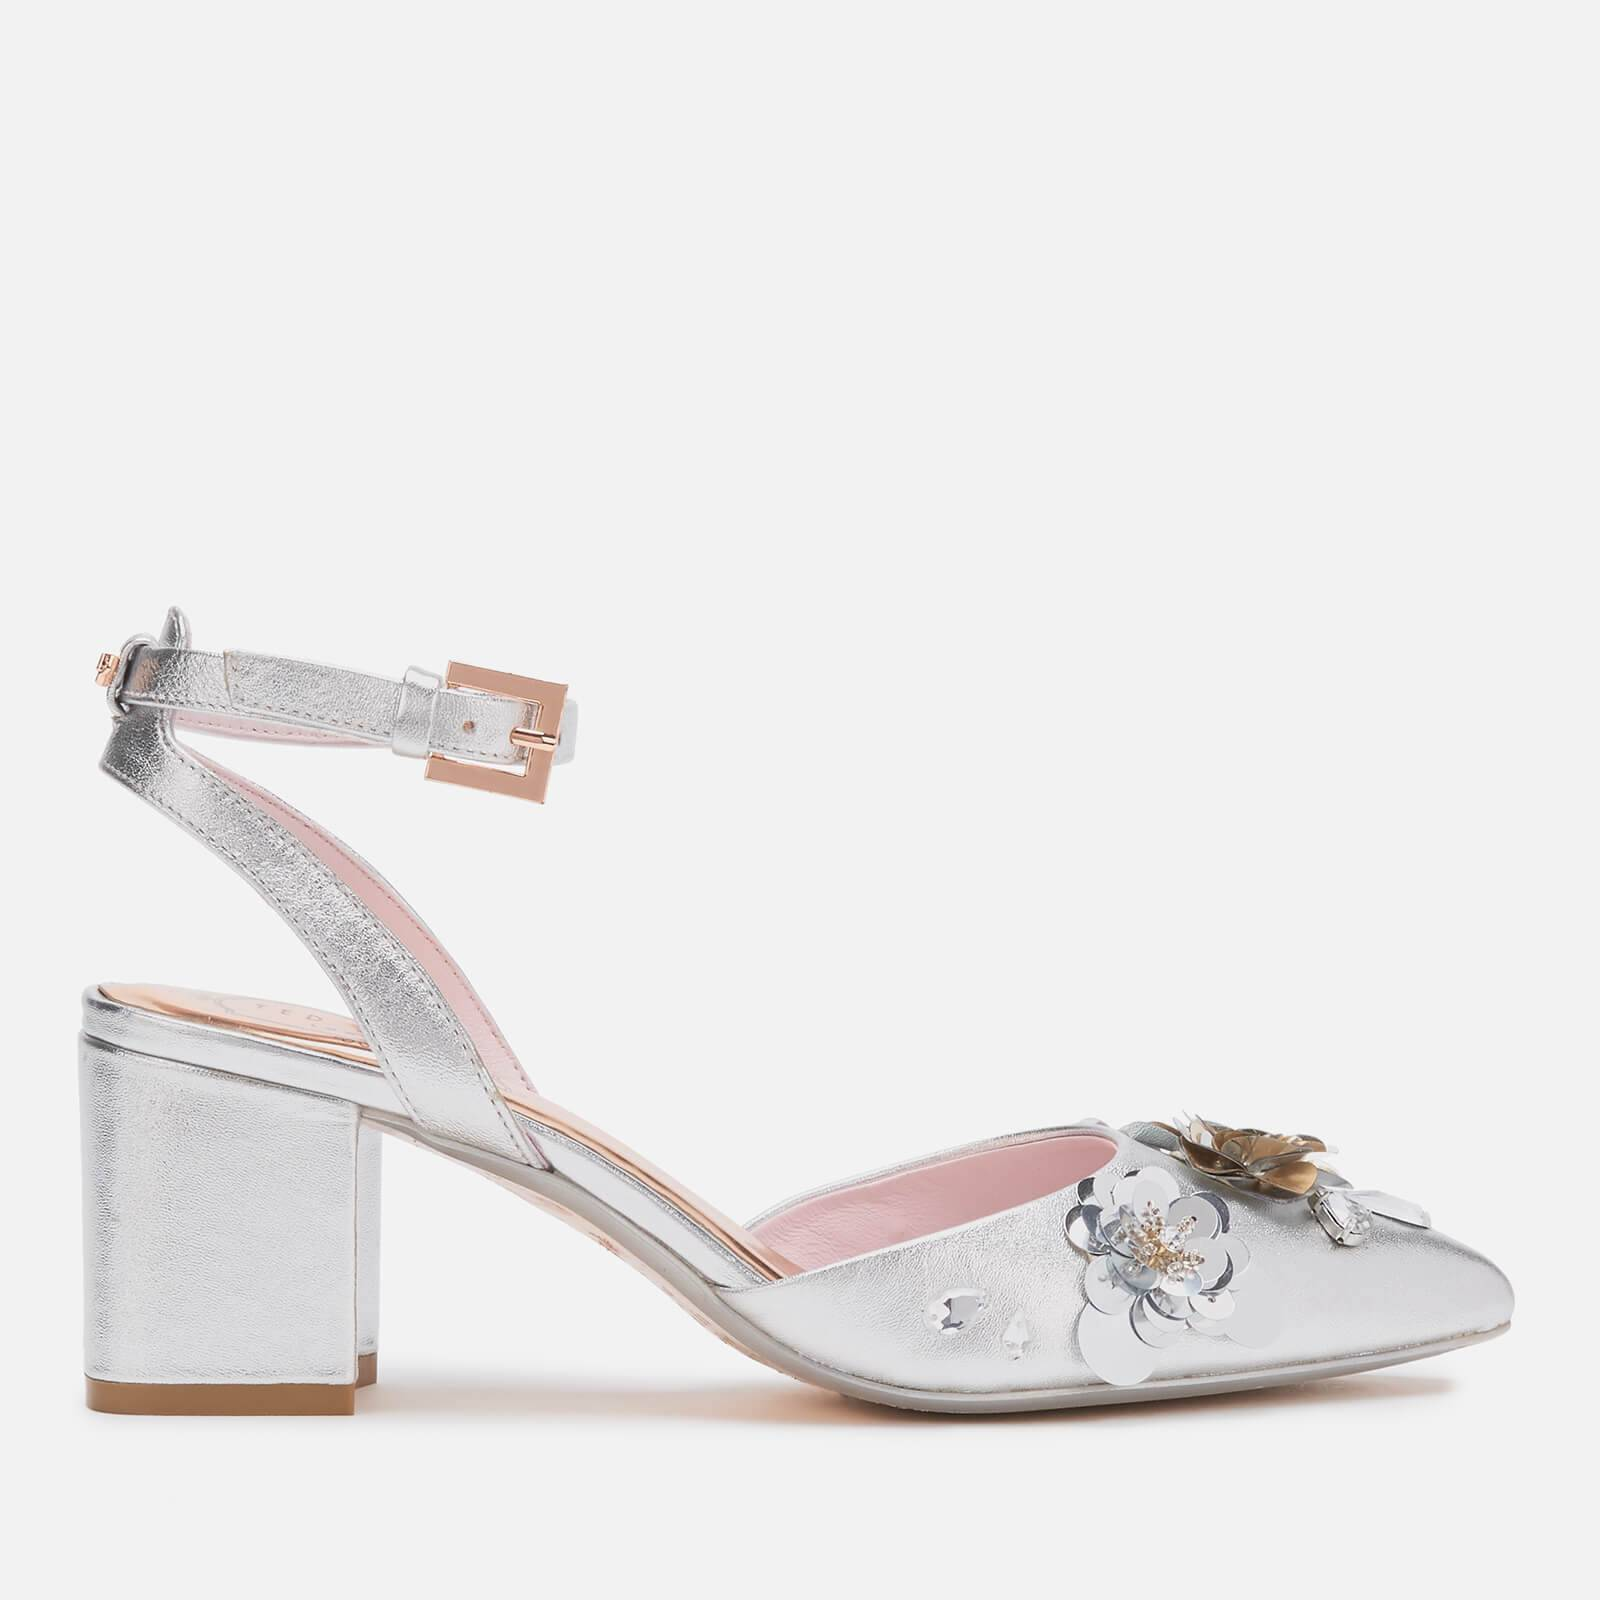 Ted Baker Women's Odesca Floral Embellished Block Heeled Sandals - Silver - UK 7